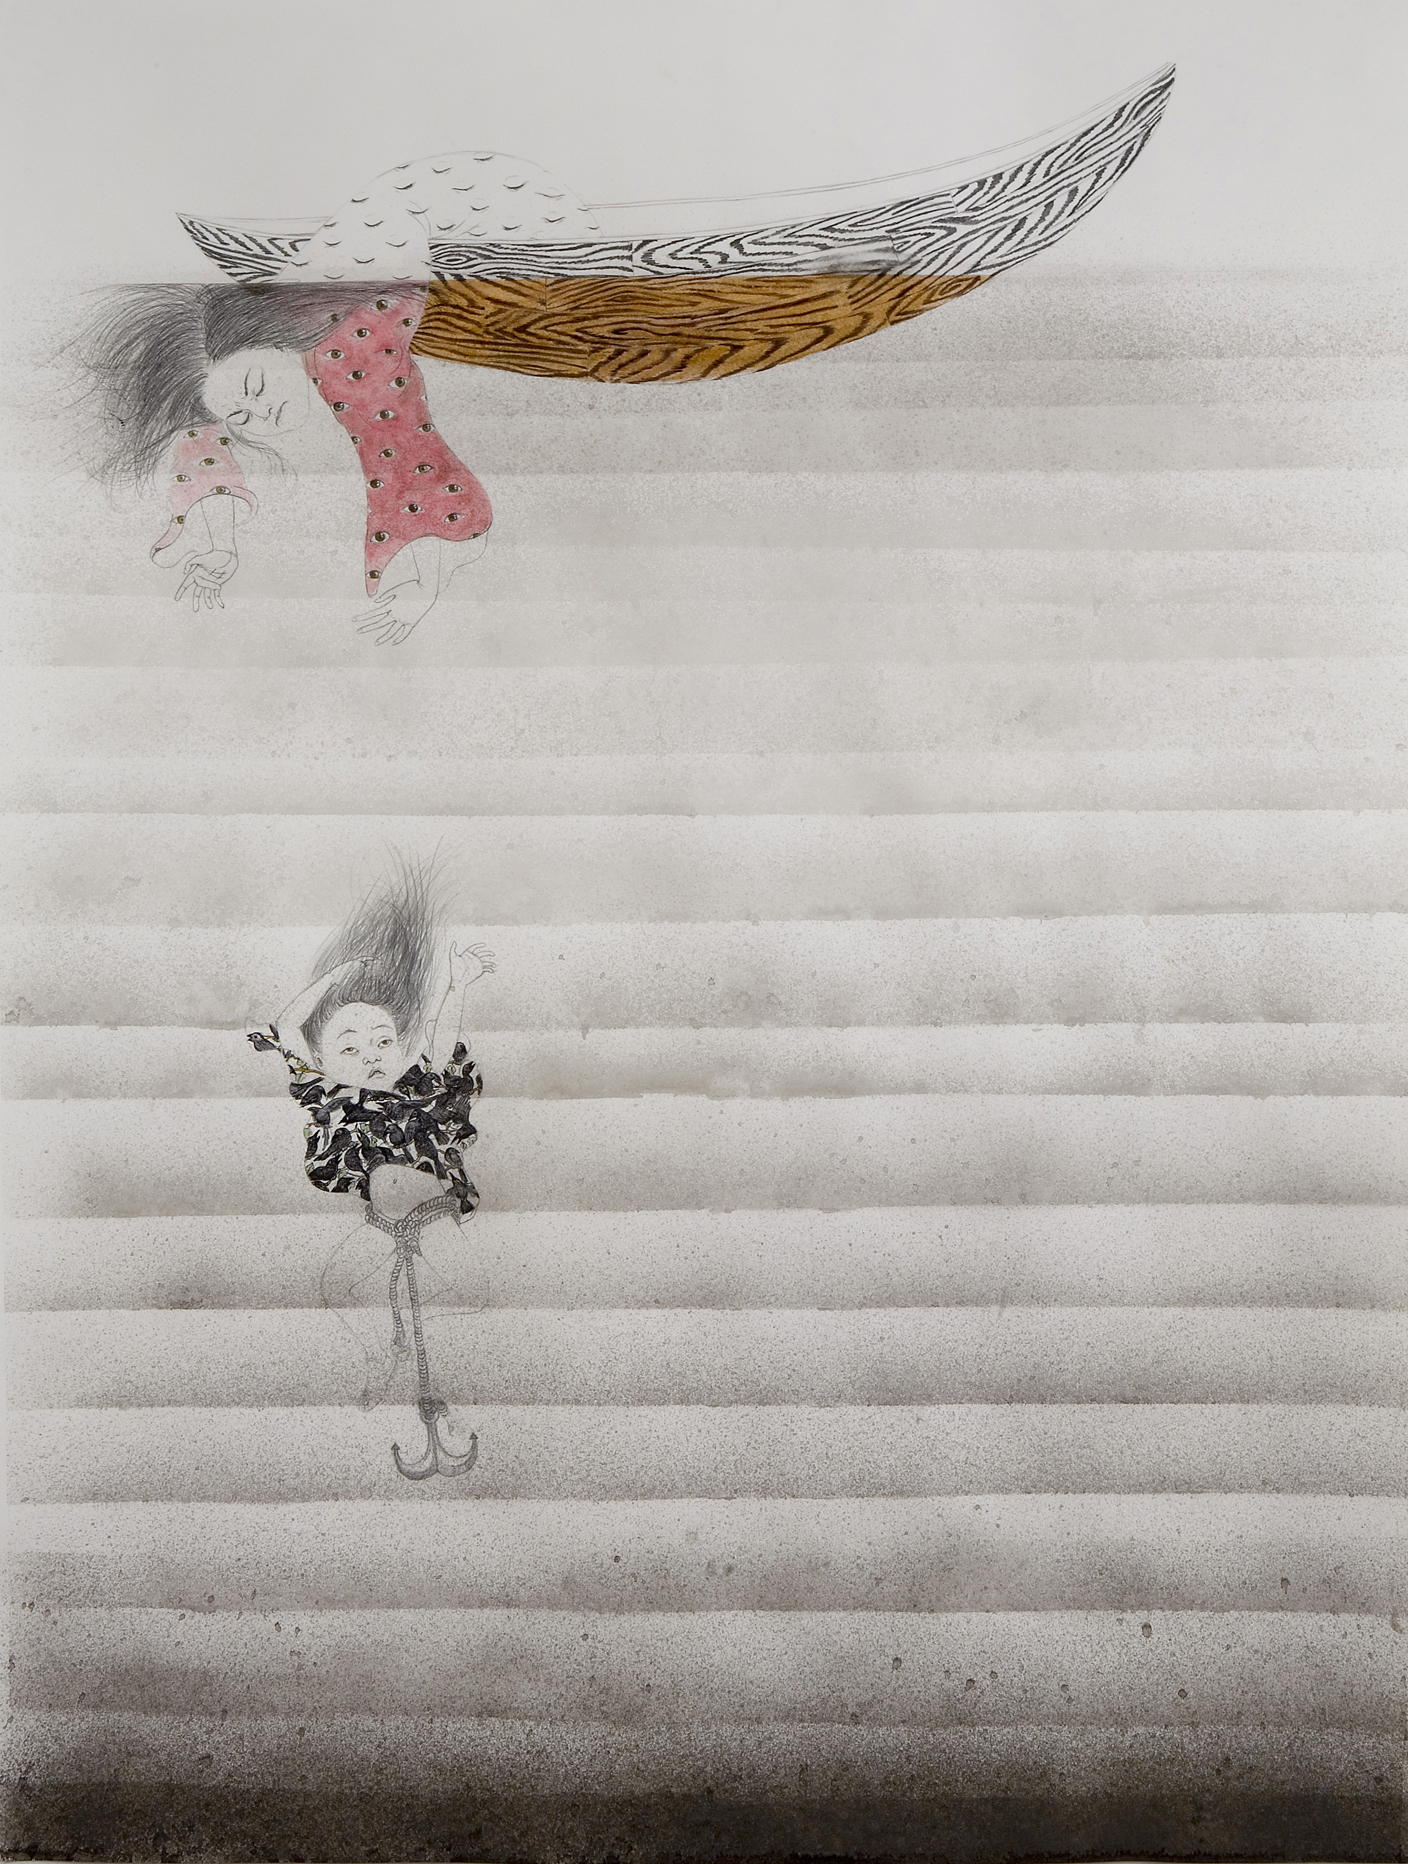 Drown , 2007 Graphite, watercolor, and ink on paper 50 X 38 inches Collection of Treger/Saint Silvestre-Art Brut Collection